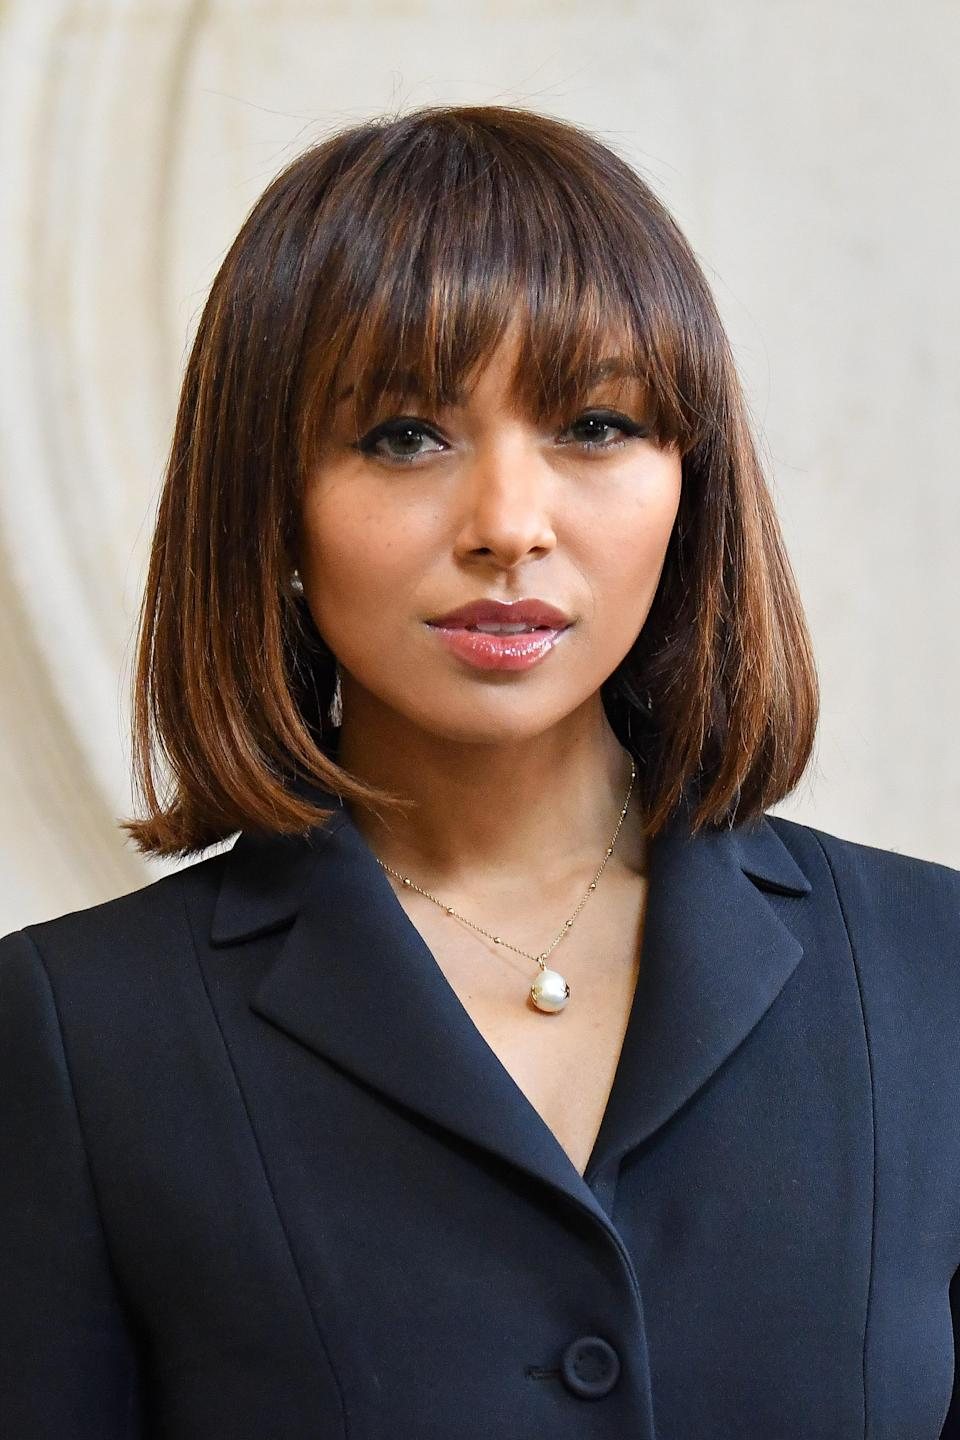 Seriously, blunt bangs and a polished lob will never not be a killer combo.